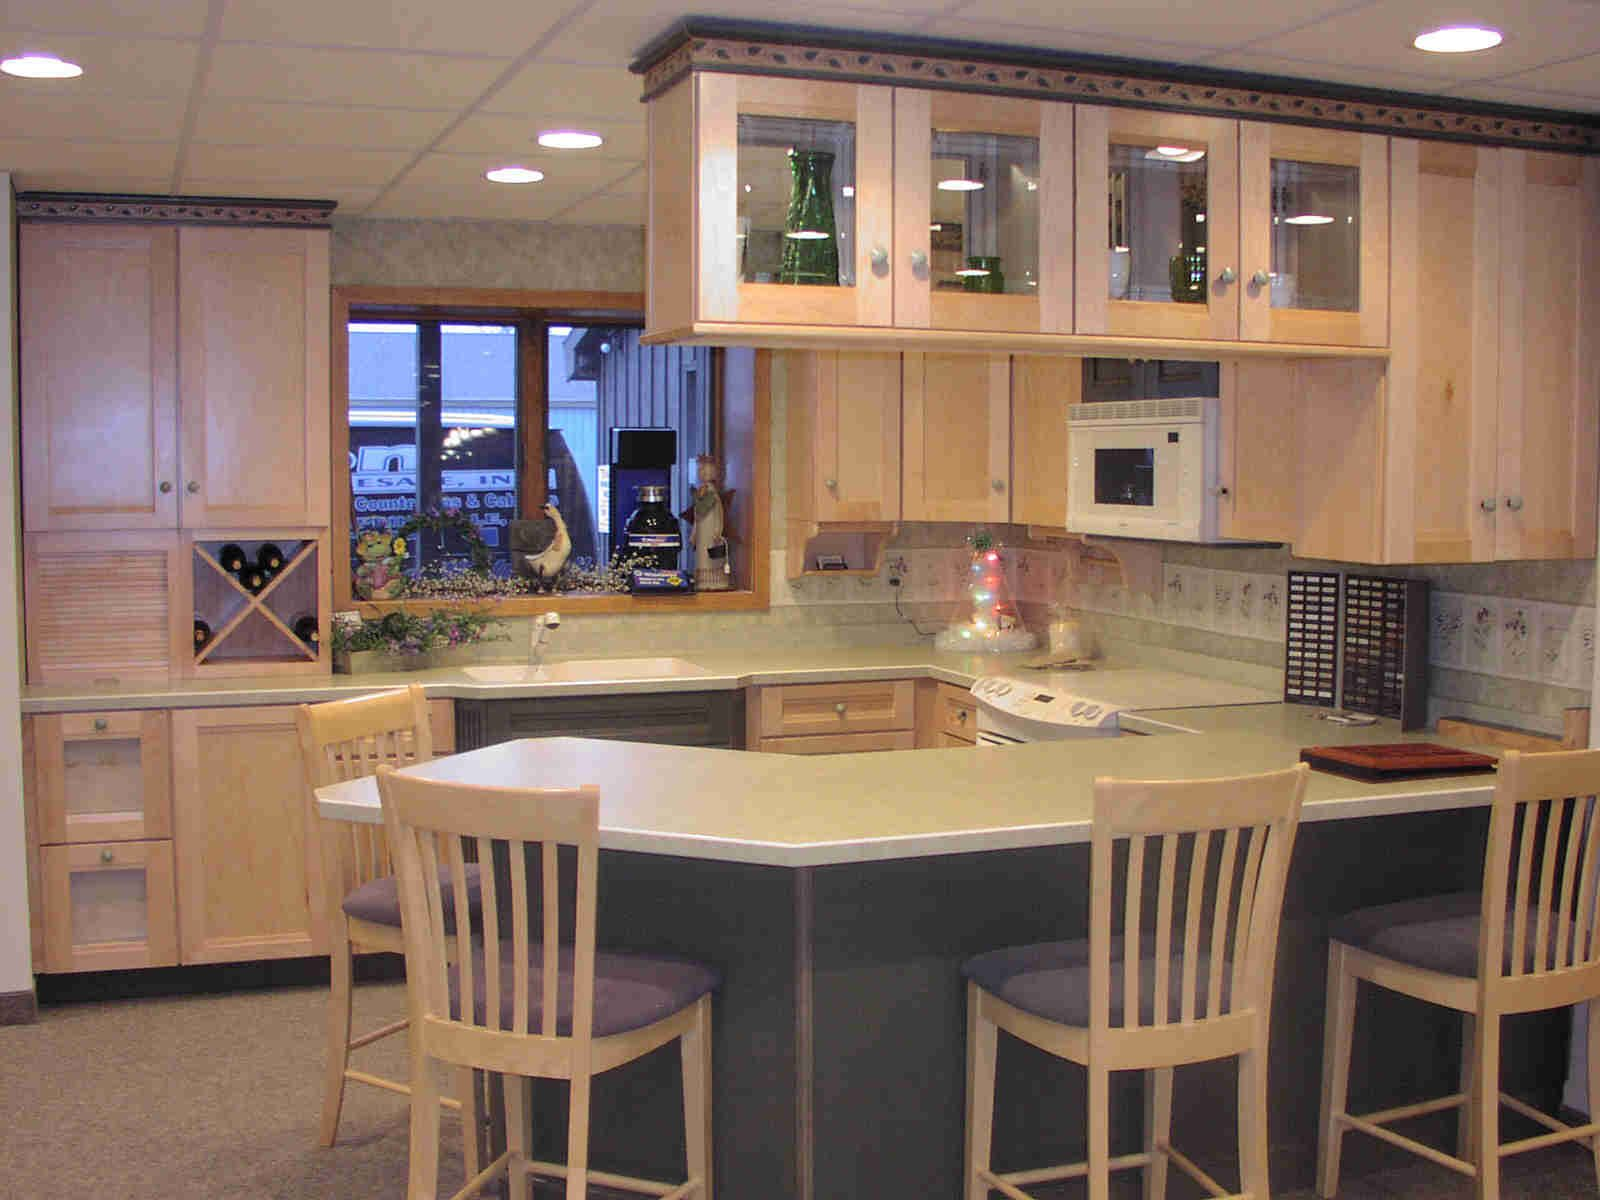 hanging kitchen cabinets large white island from ceiling cabinet maid u shape layout